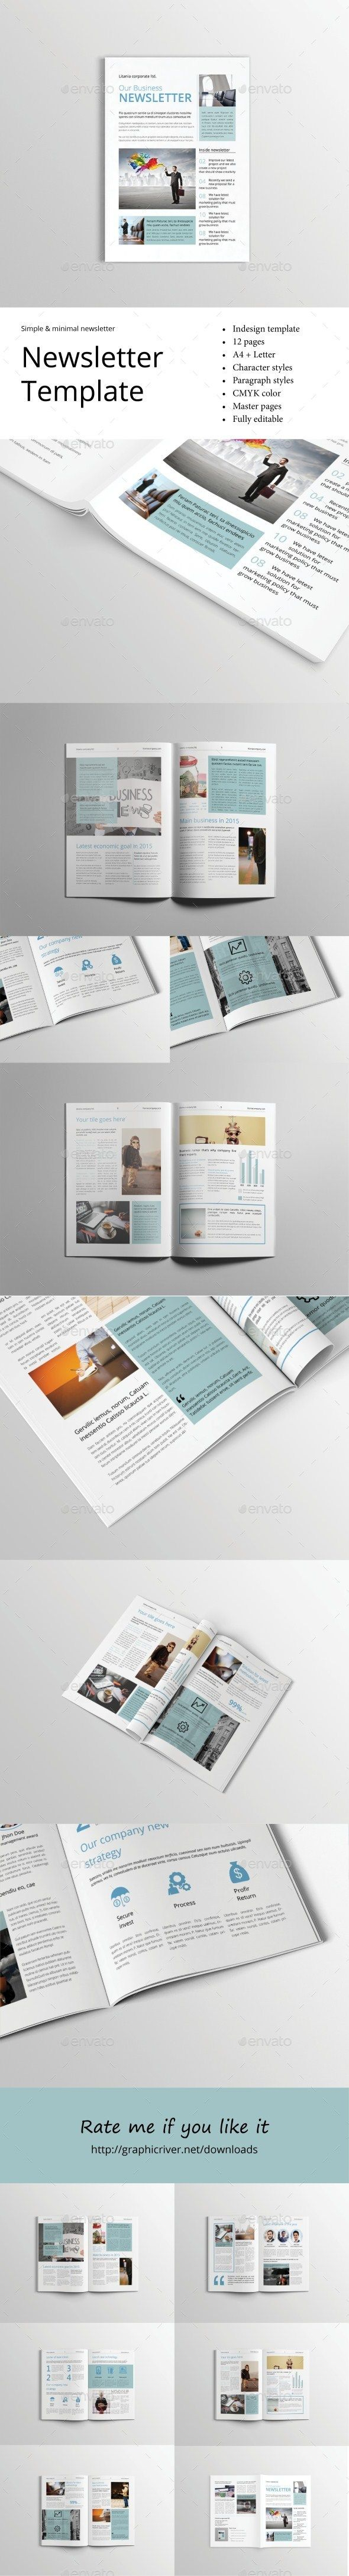 #Newsletter Template - Newsletters #Print #Templates Download here: https://graphicriver.net/item/newsletter-template/13797343?ref=alena994